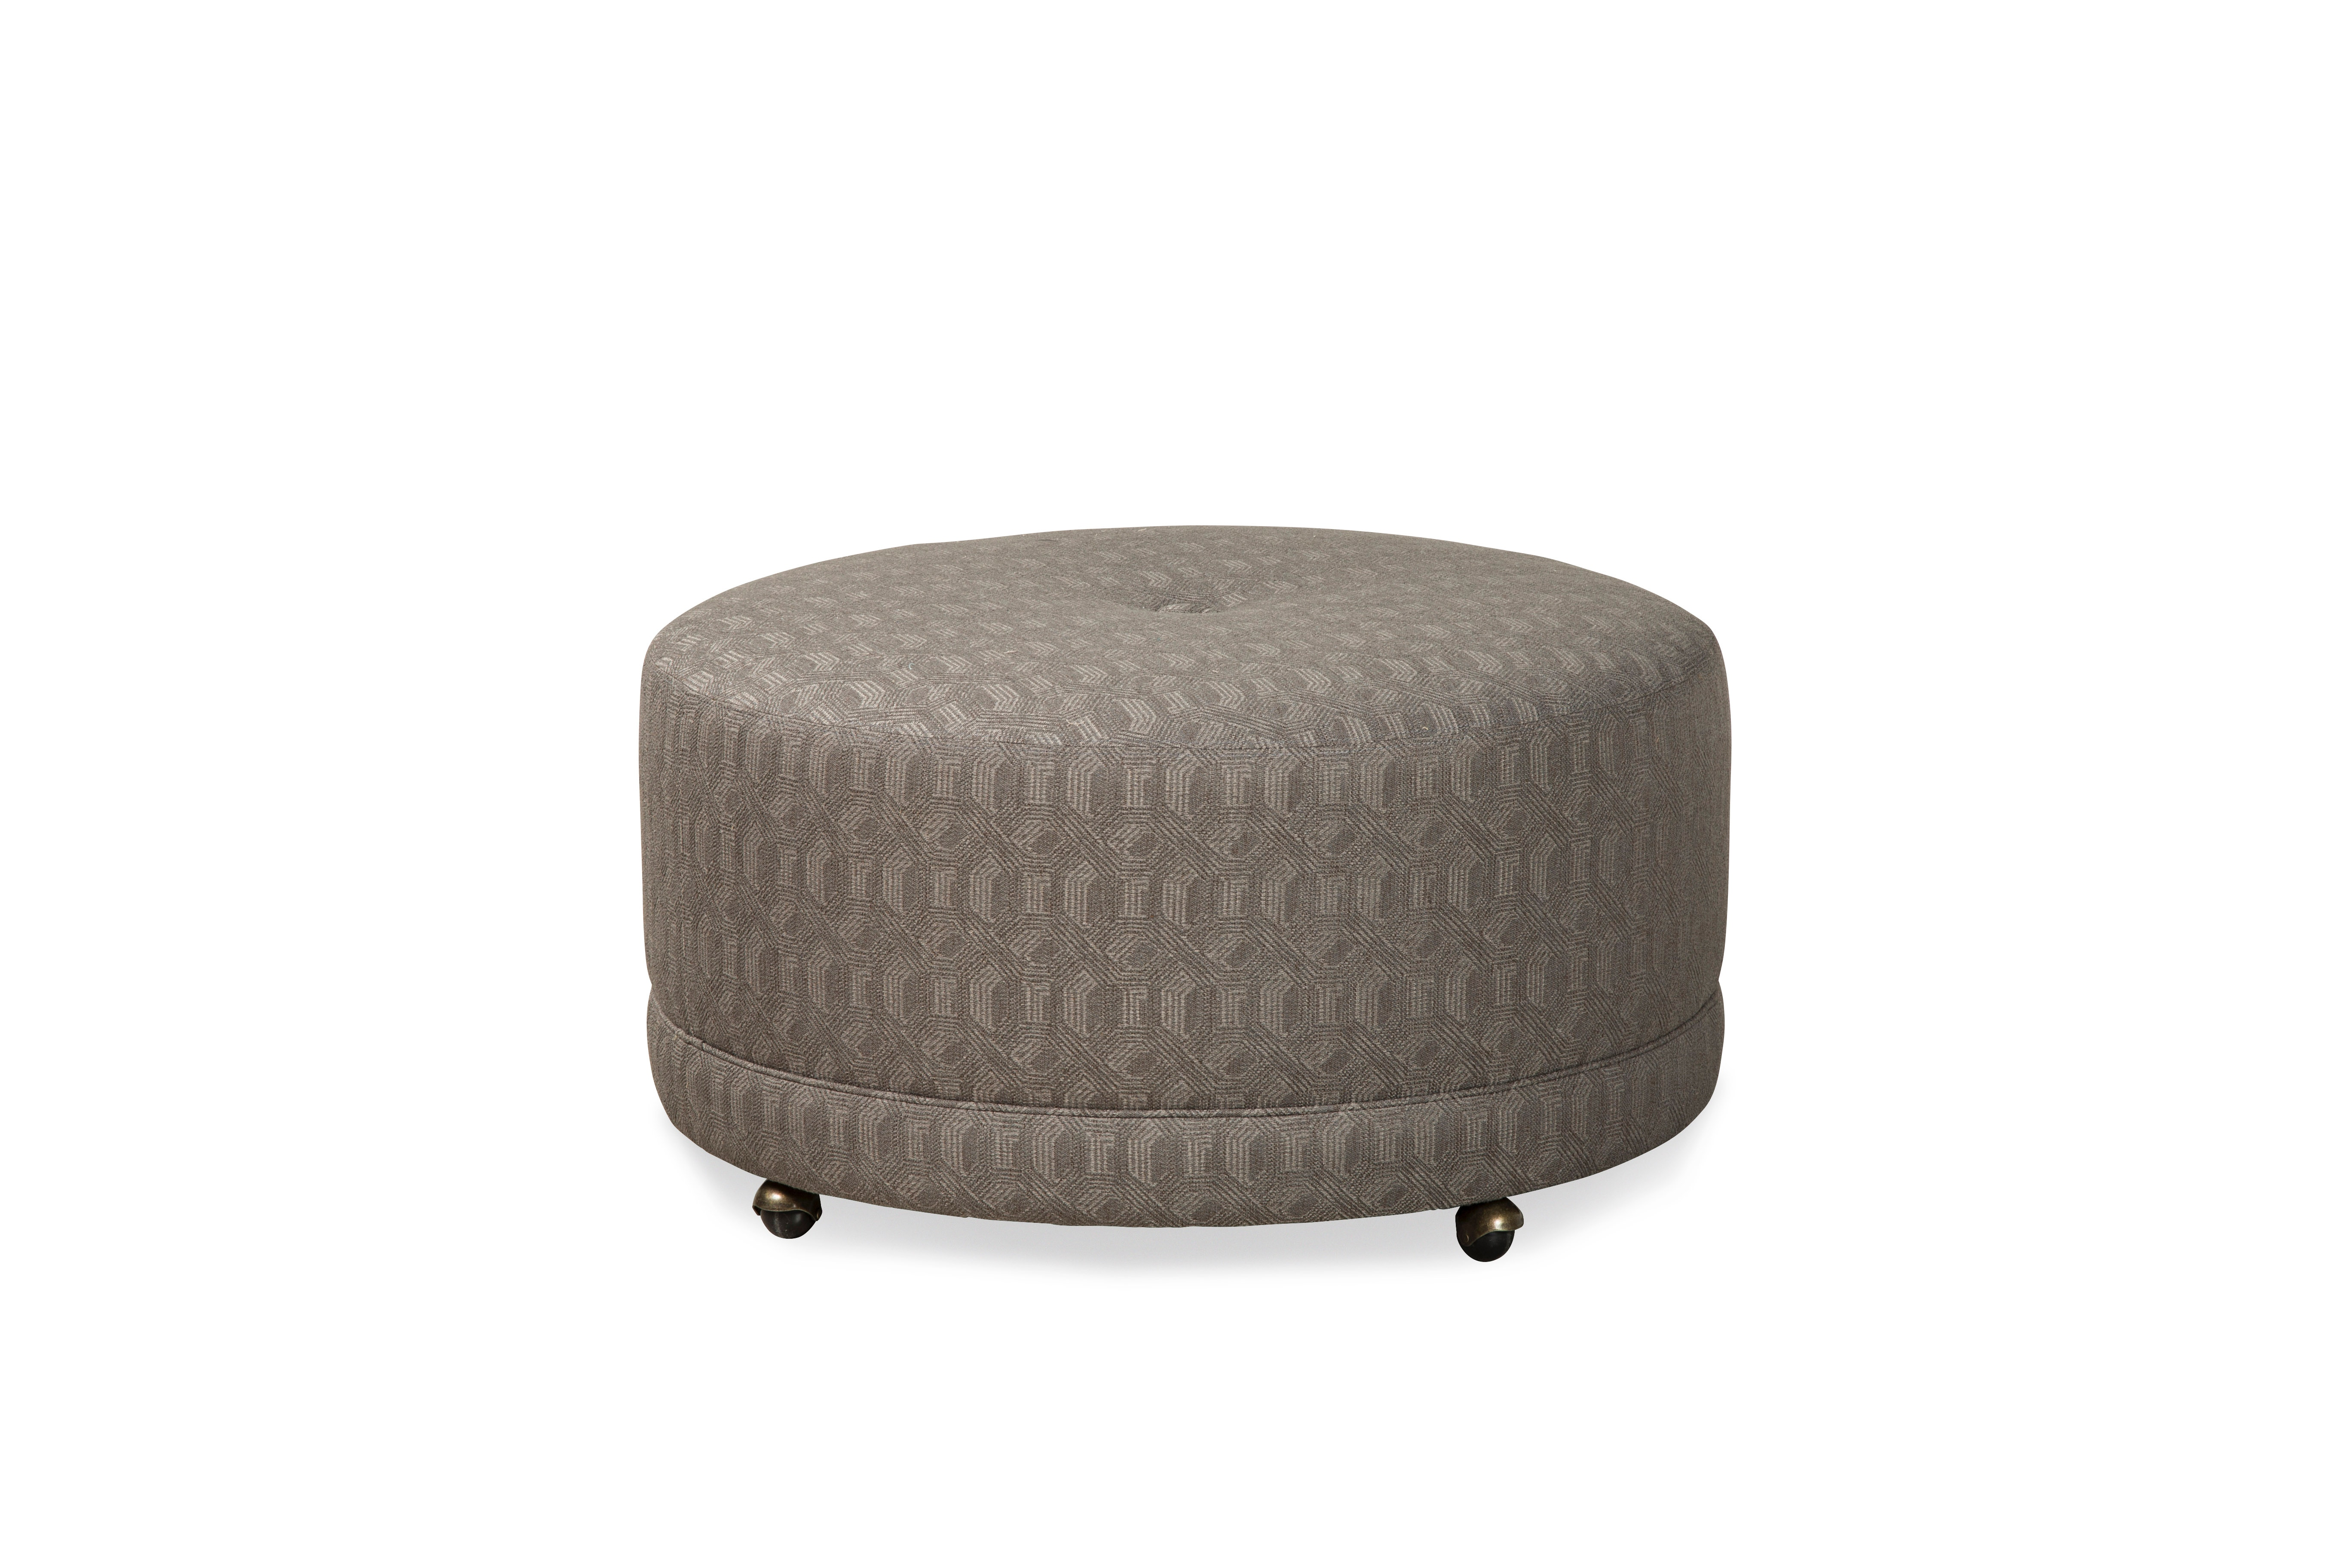 Cozy Life Living Room Ottoman 089900   Doughtyu0027s Furniture Inc.   Clayton,  NJ